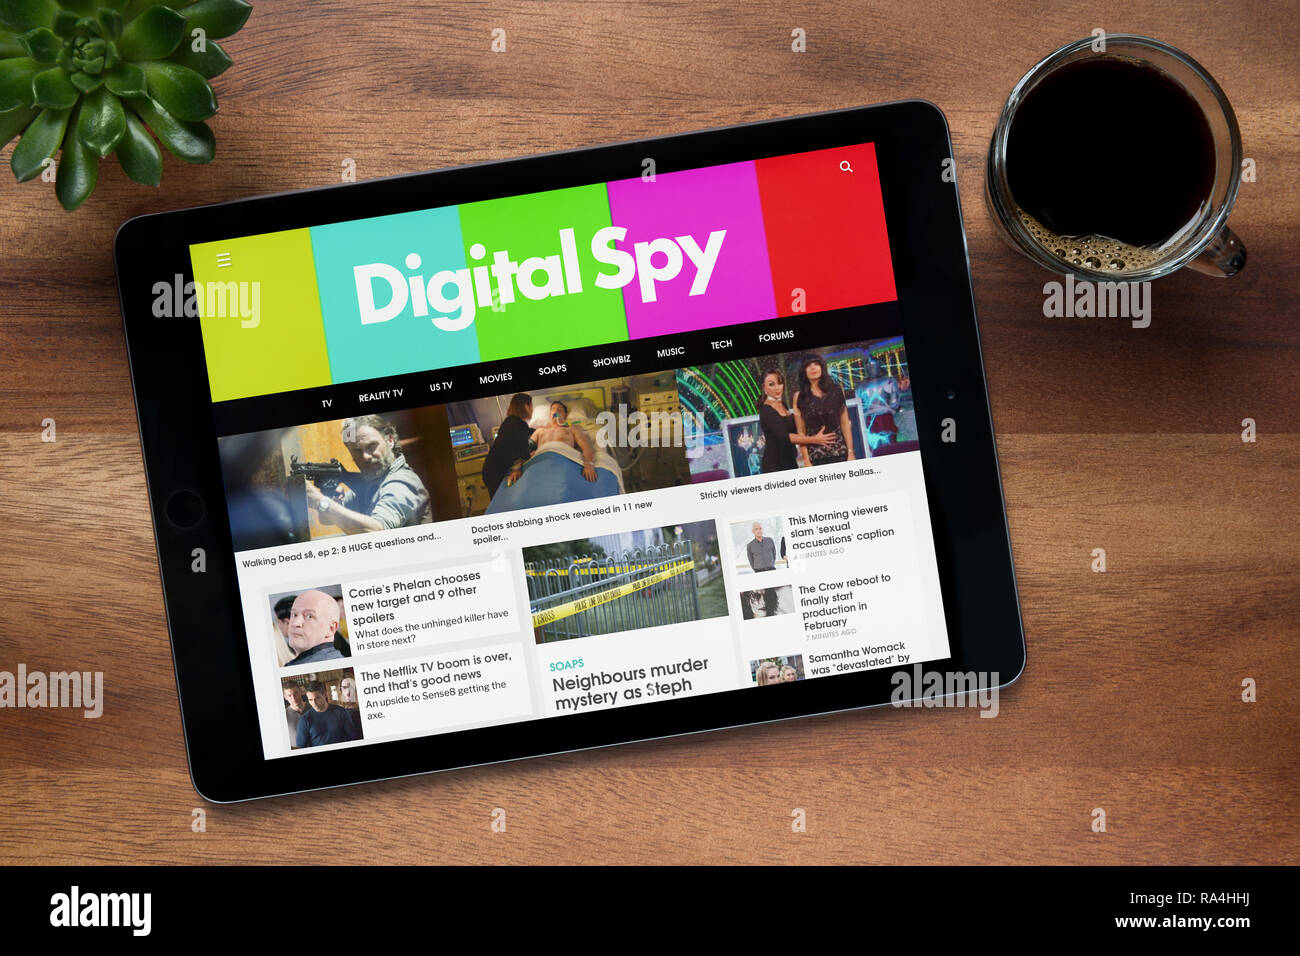 The website of Digital Spy is seen on an iPad tablet, on a wooden table along with an espresso coffee and a house plant (Editorial use only). - Stock Image